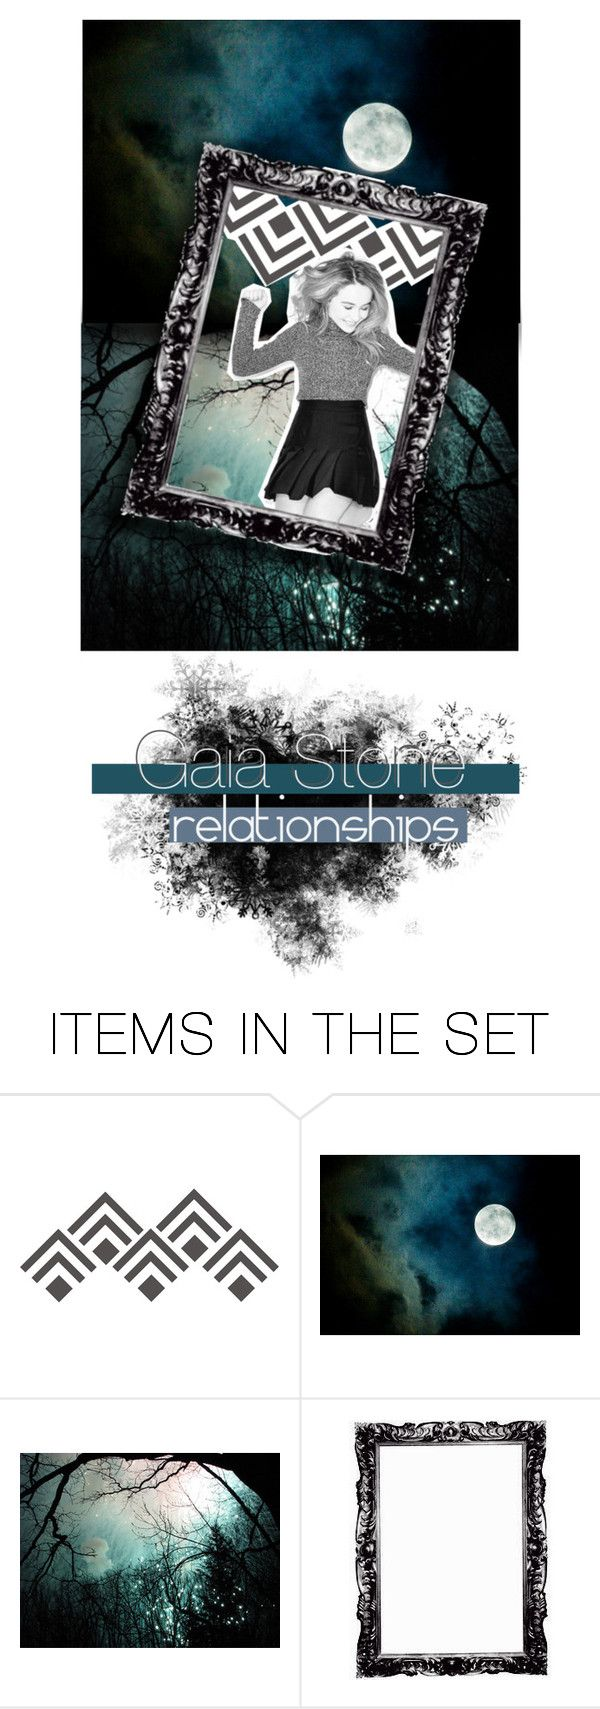 """gaia stone's relationships part 2 - in need of enemies!"" by clementineblue ❤ liked on Polyvore featuring art"